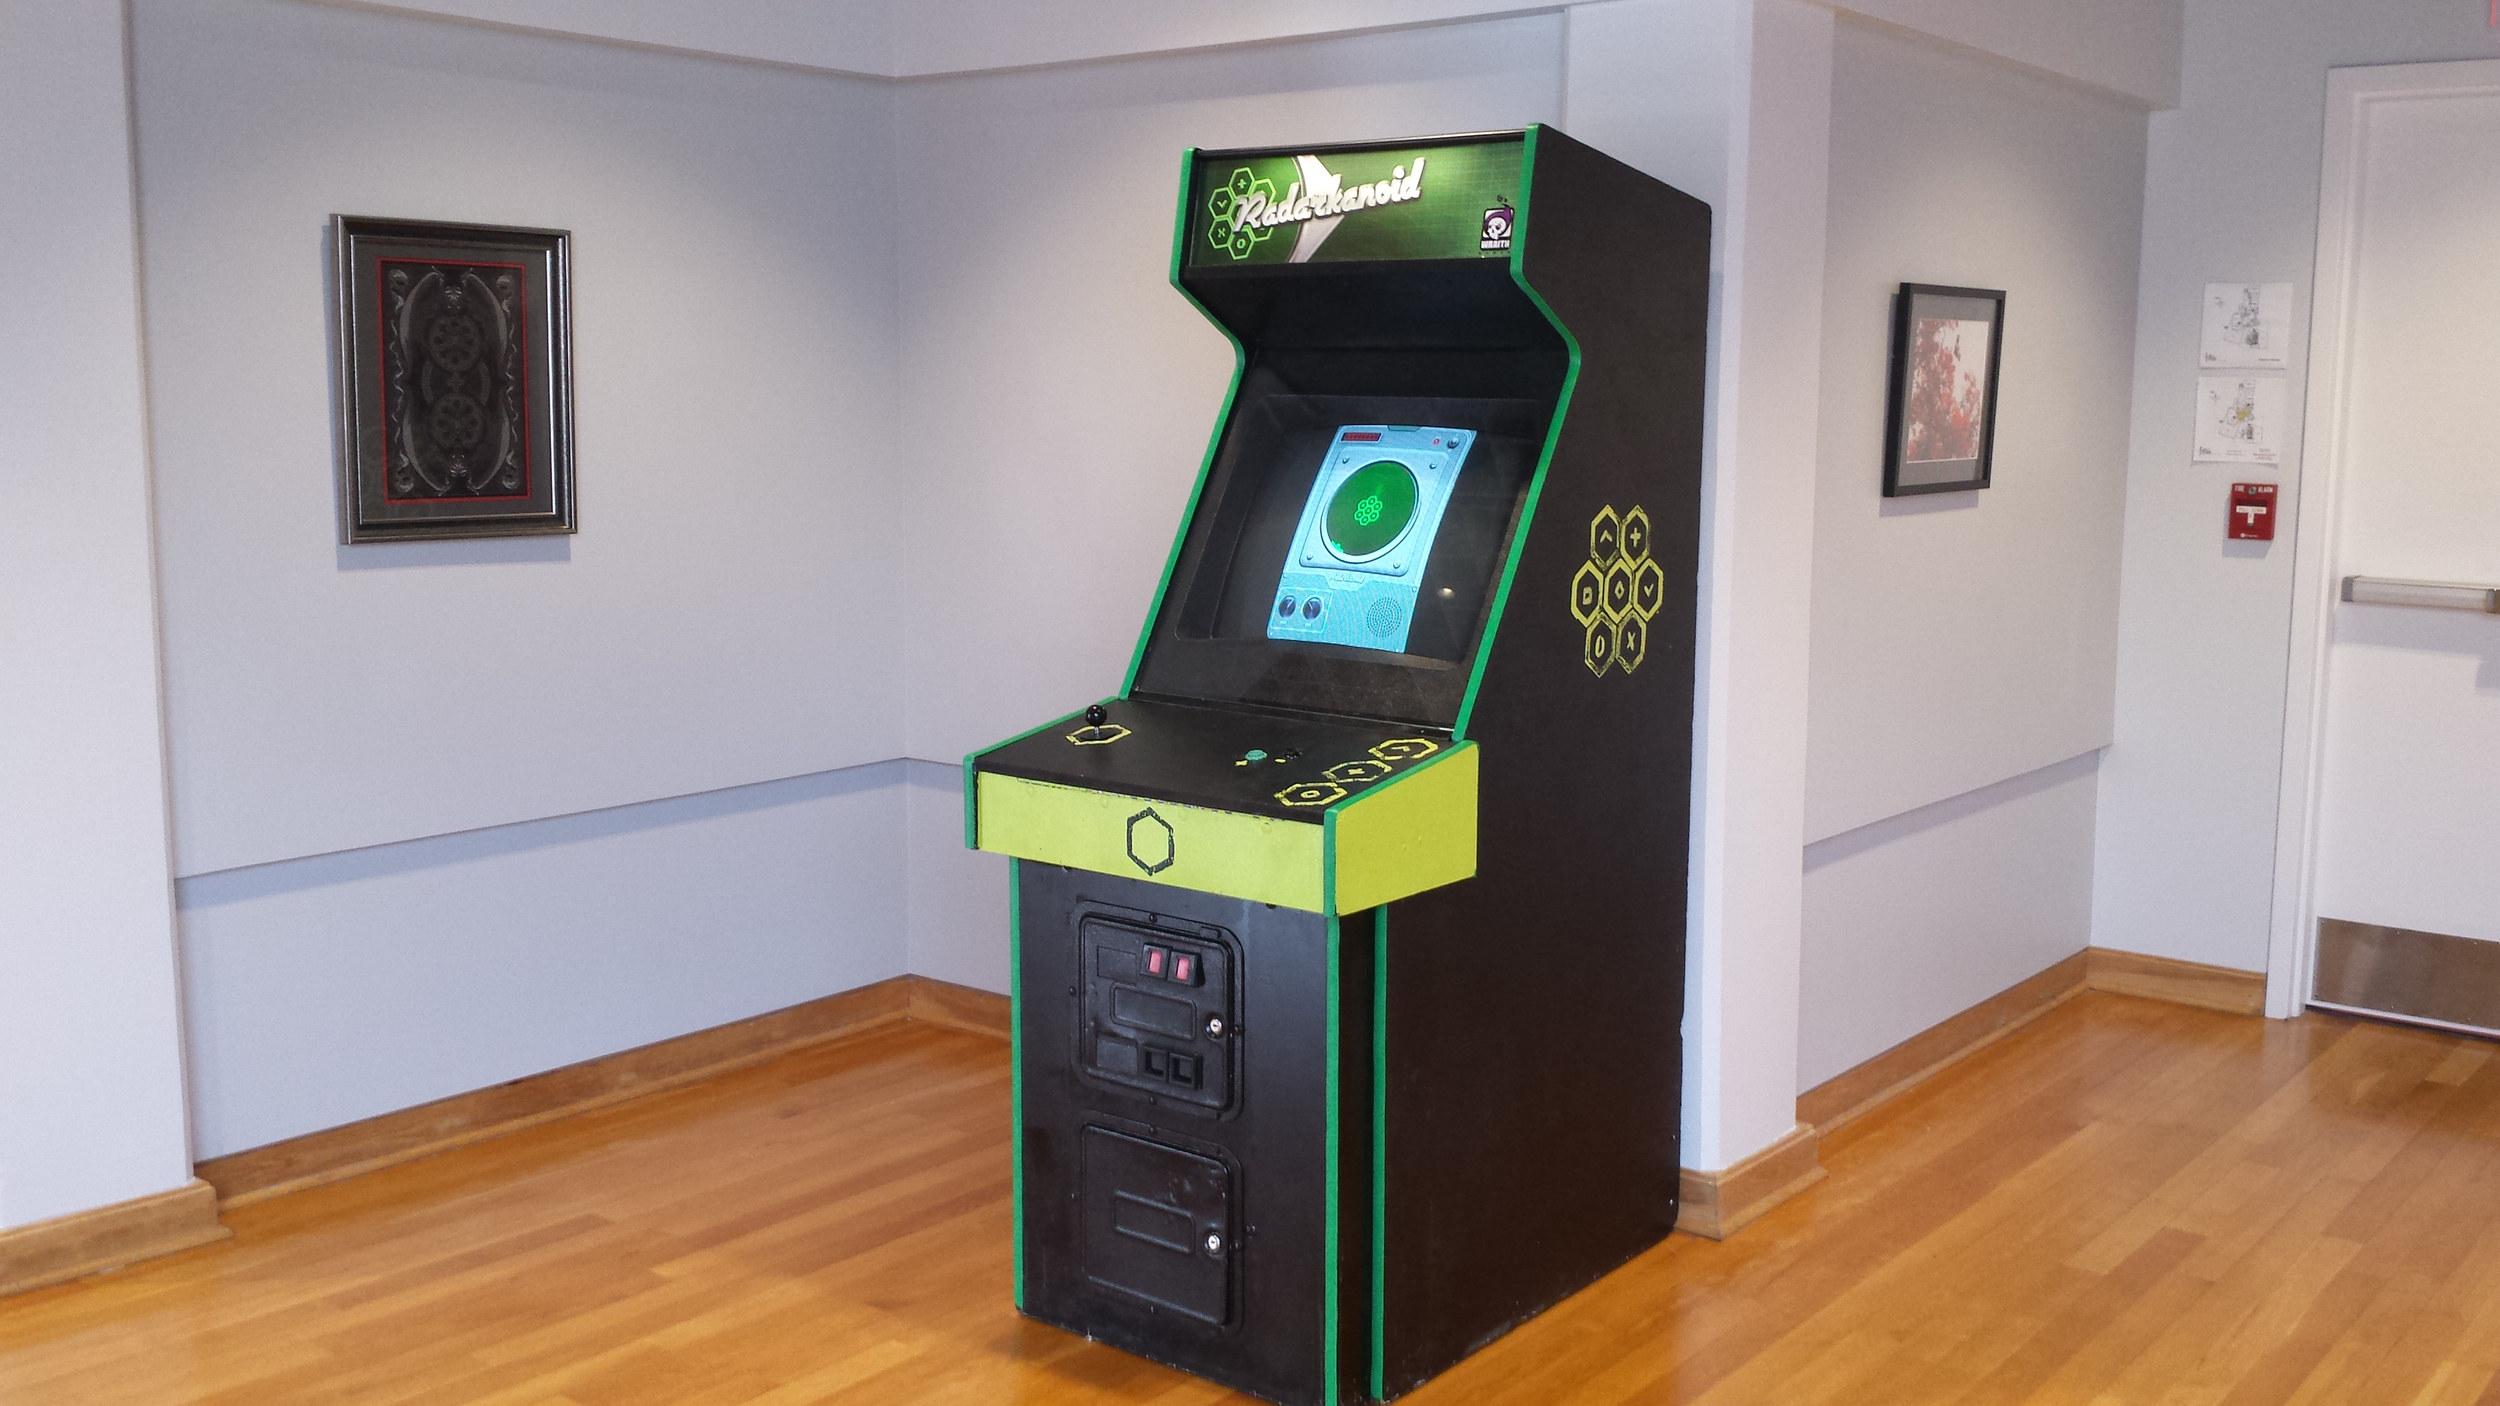 Radarkanoid Arcade at the Fitton Center (1).png